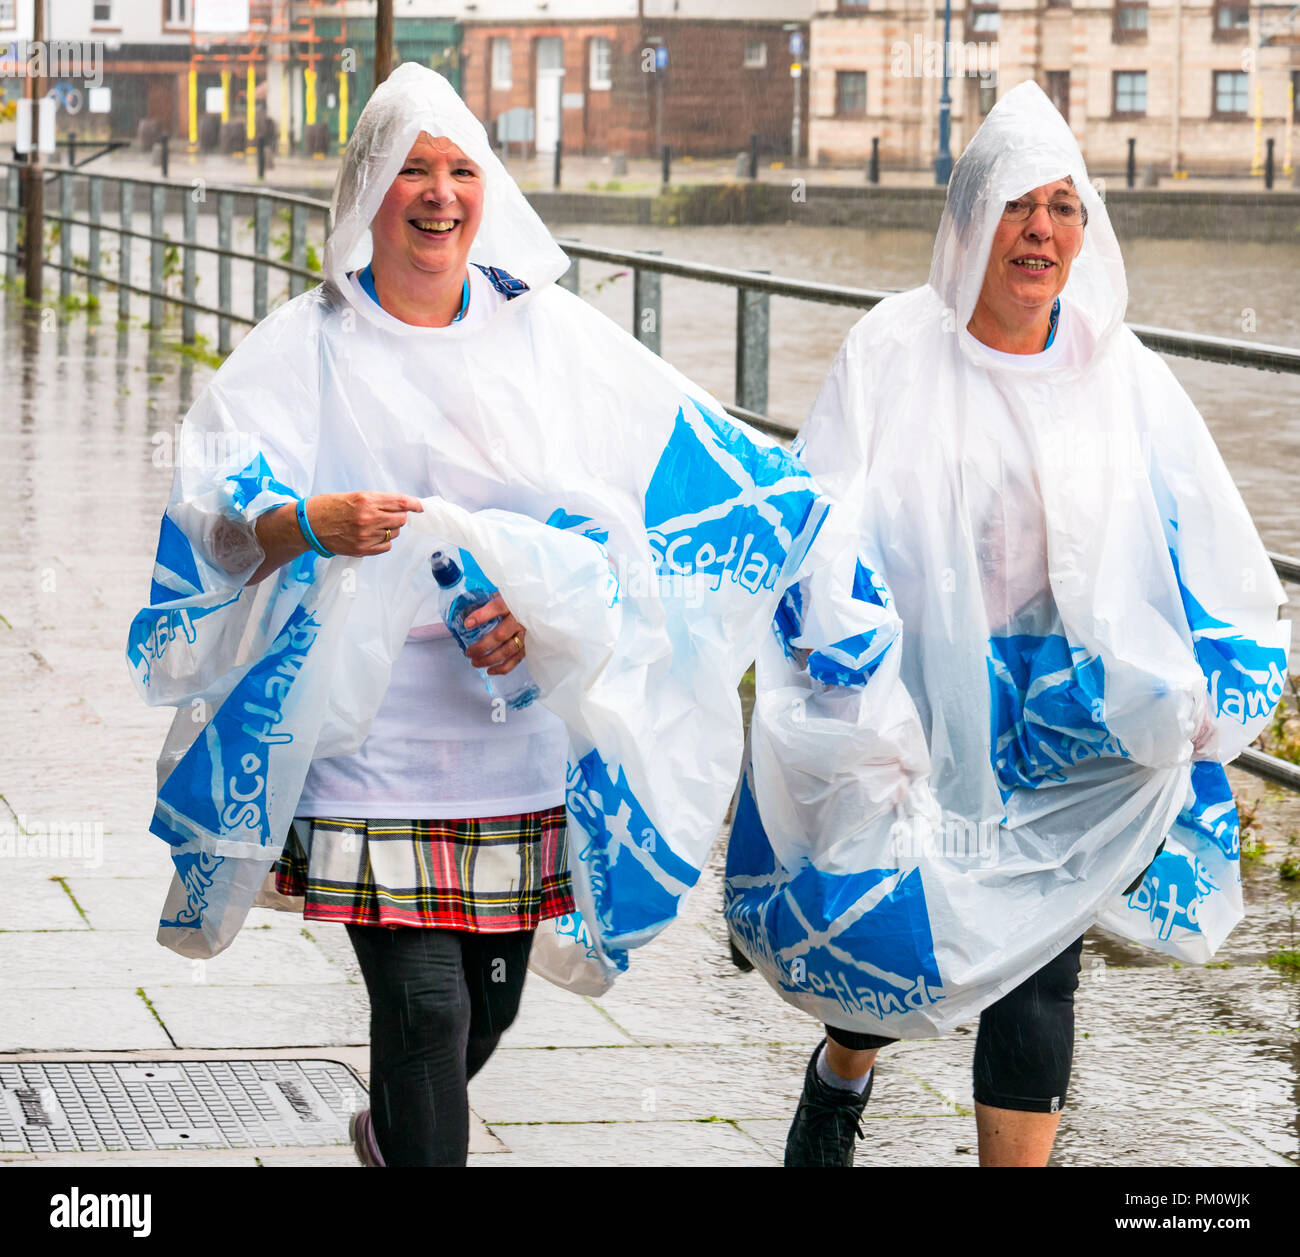 Leith, Edinburgh, Scotland, UK, 16th September 2018. Edinburgh Kilt Walk, the last of four kilt walks this year after those in Glasgow, Aberdeen and Dundee, sponsored by the Royal Bank of Scotland, takes place today. Walkers raise funds for a charity of their choice. There are three walk lengths: the full 24 miles from Holyrood Park to BT Murrayfield Stadium and two shorter walks of 15.5 and 5 miles. The kilt walkers reach The Shore at about Mile 14 in the rain. Two women wearing matching rain ponchos with saltires walk along the riverbank - Stock Image